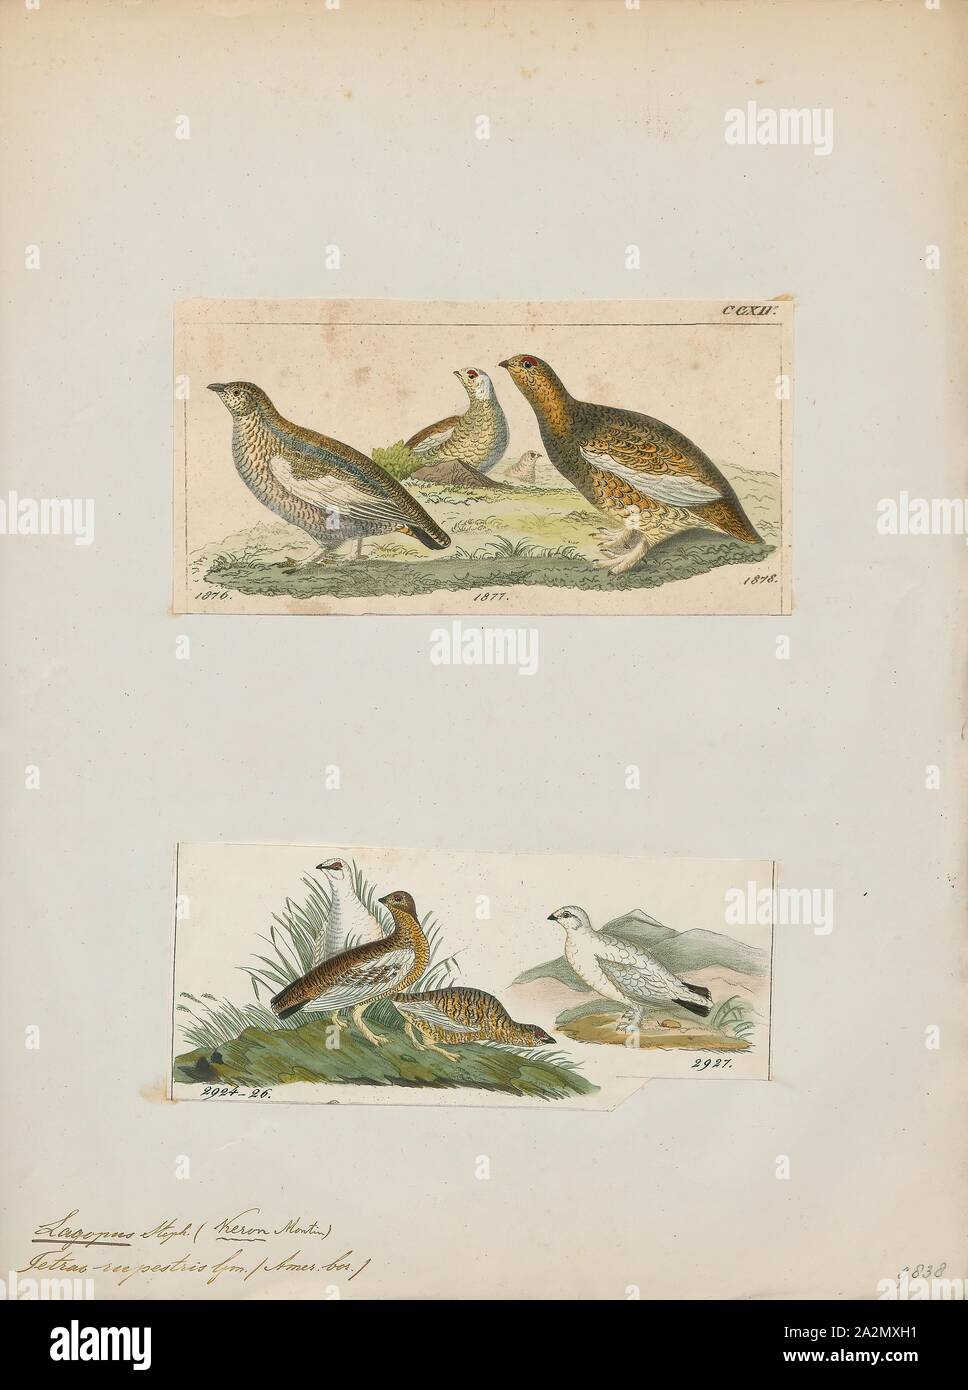 Lagopus rupestris, Print, Lagopus is a small genus of birds in the grouse subfamily commonly known as ptarmigans. The genus contains three living species with numerous described subspecies, all living in tundra or cold upland areas., 1700-1880 Stock Photo